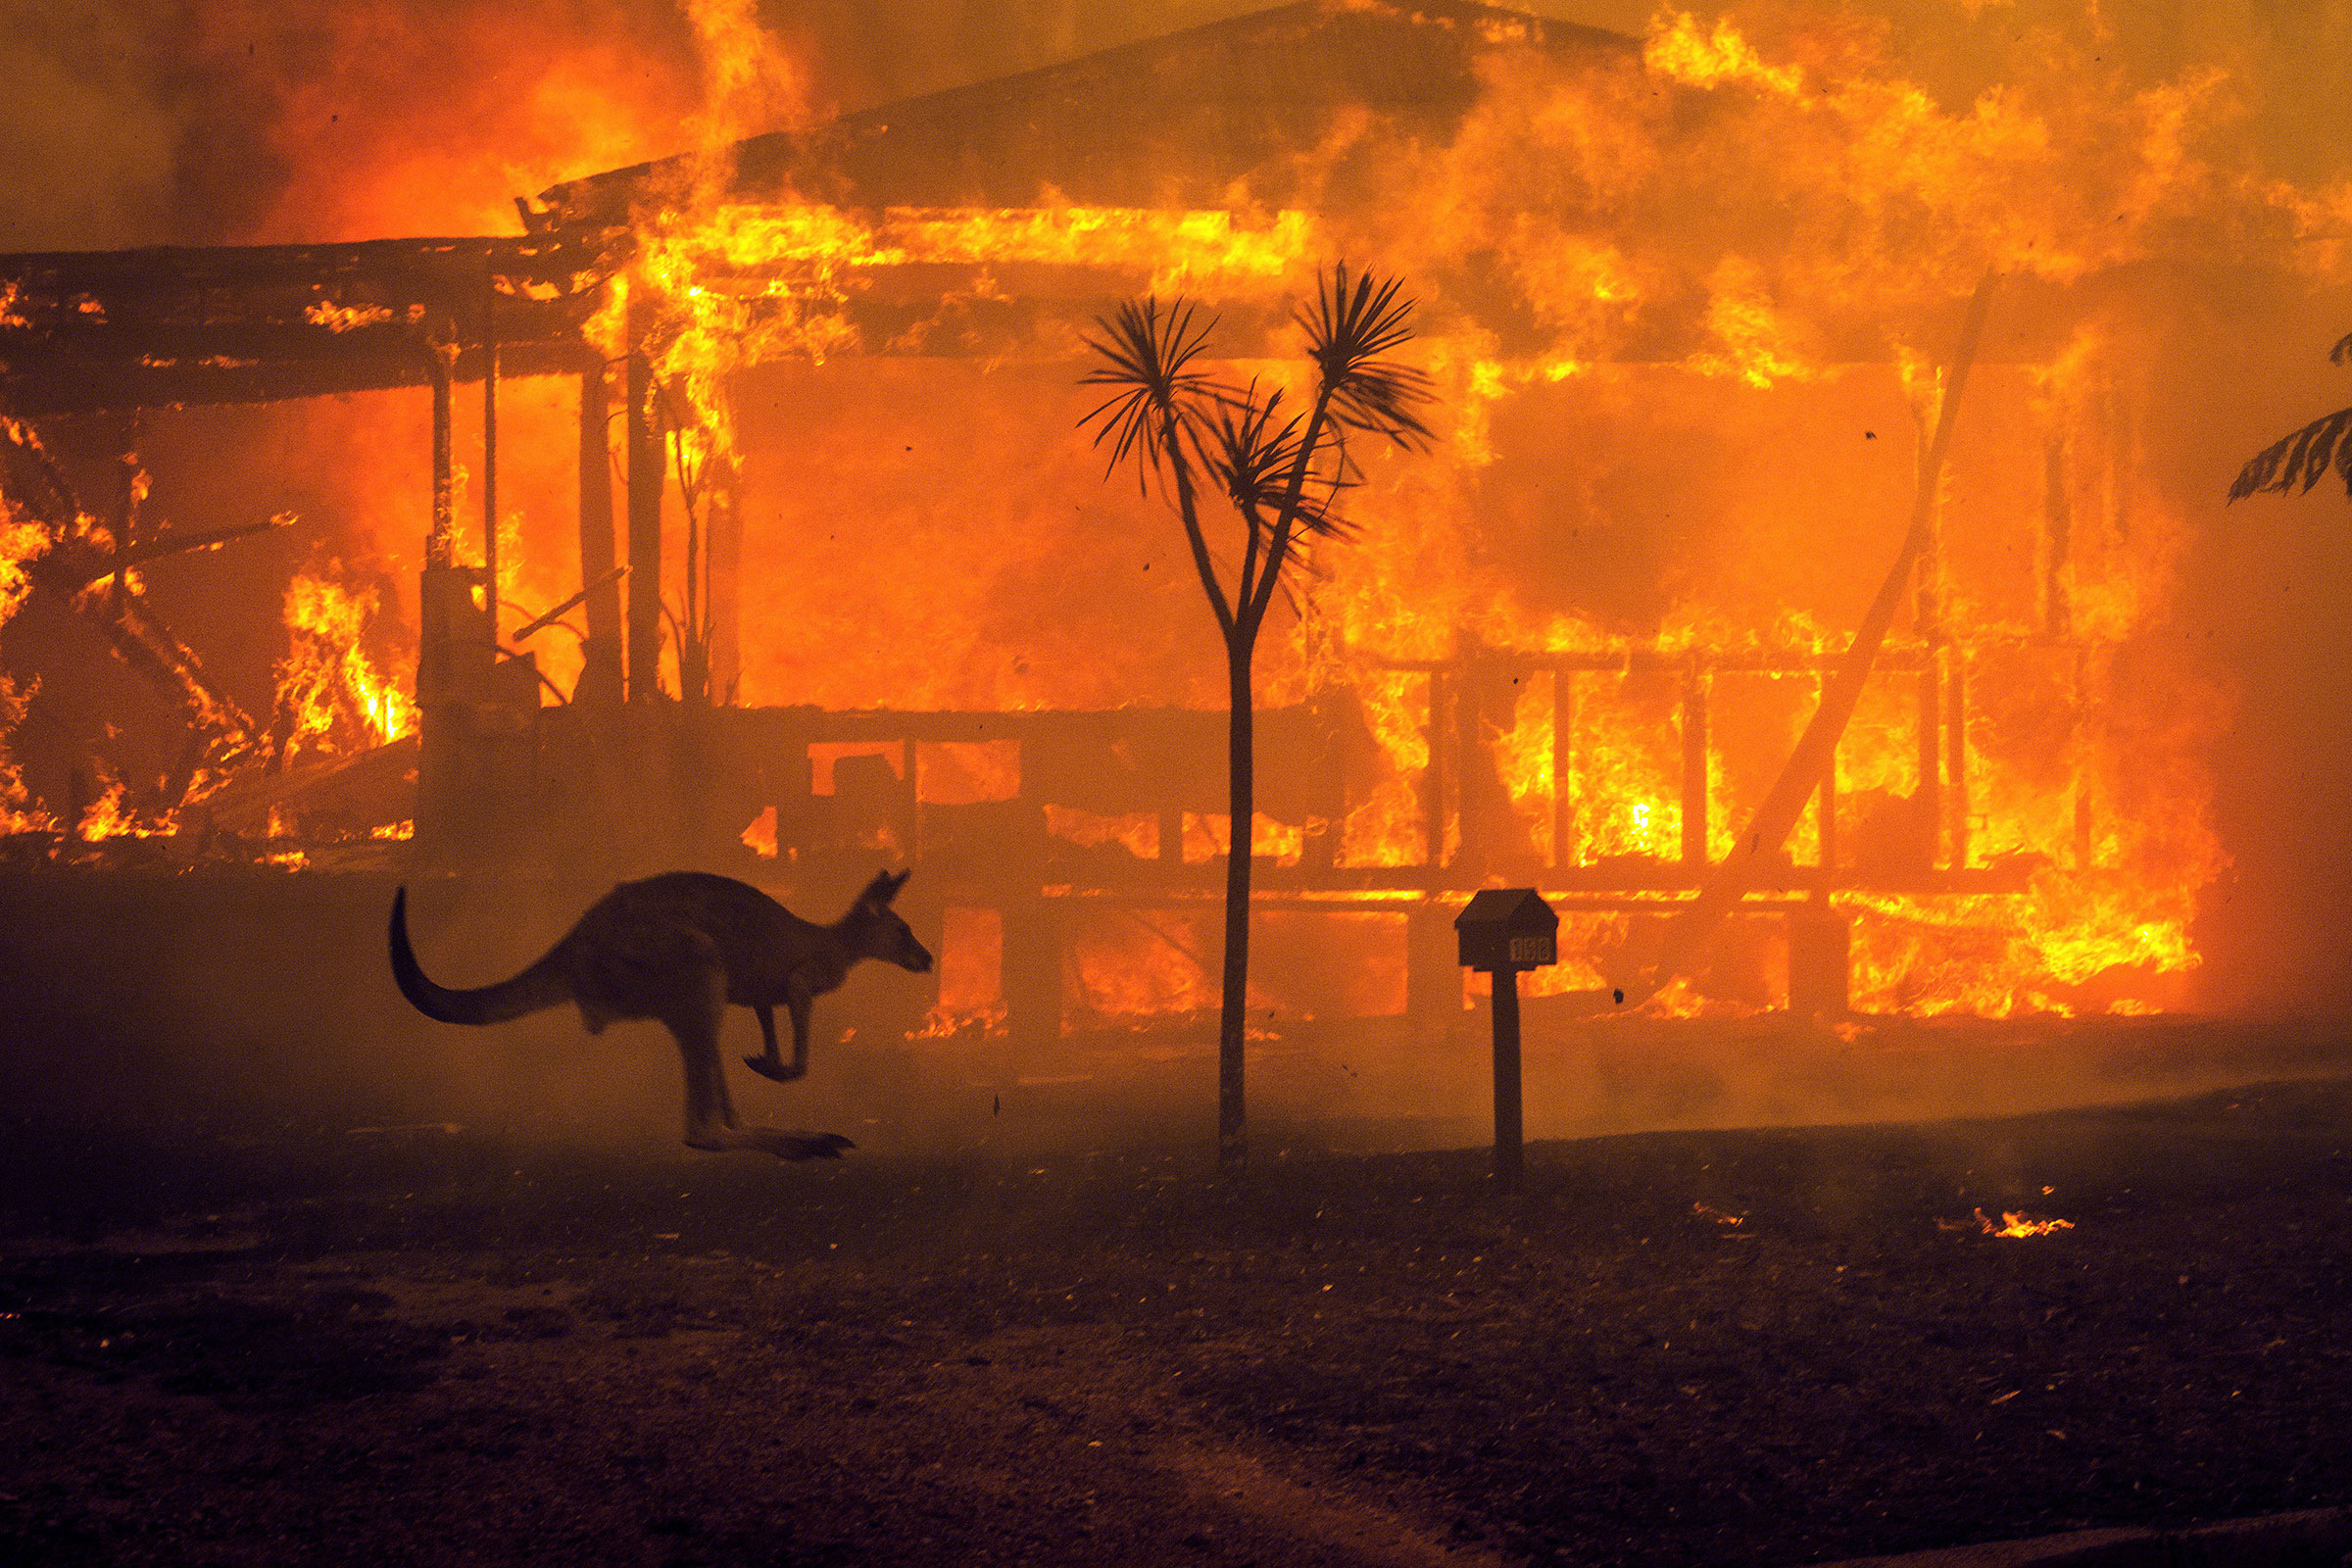 More than 15 million acres have burned across Australia this season